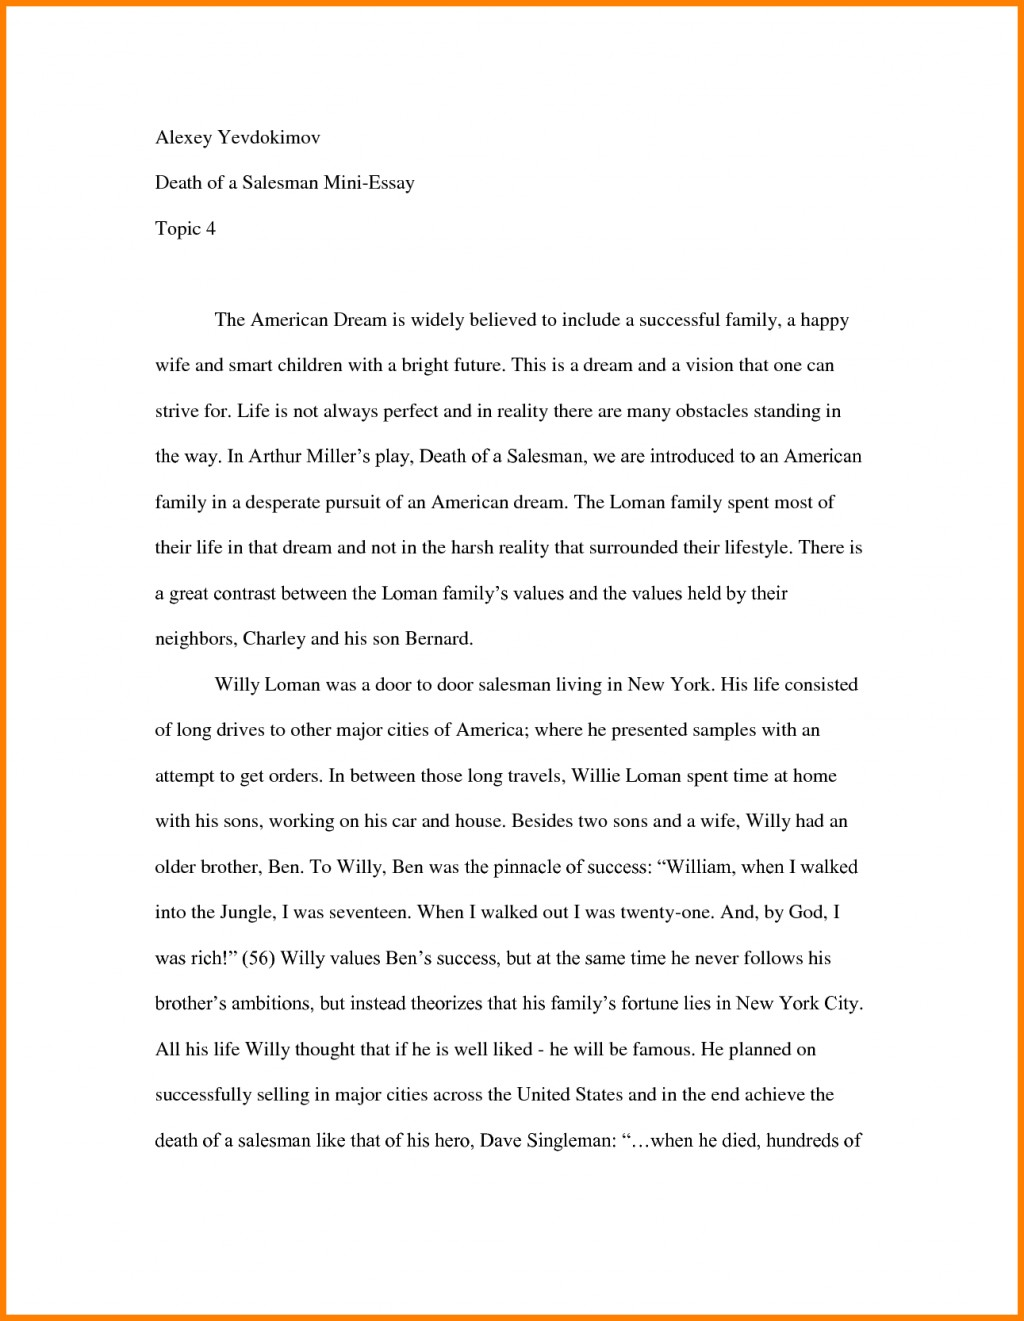 005 How To Begin An Essay Start Off About Yourself Incredible Write On A Book You Didn't Read Open Paragraph For College Large